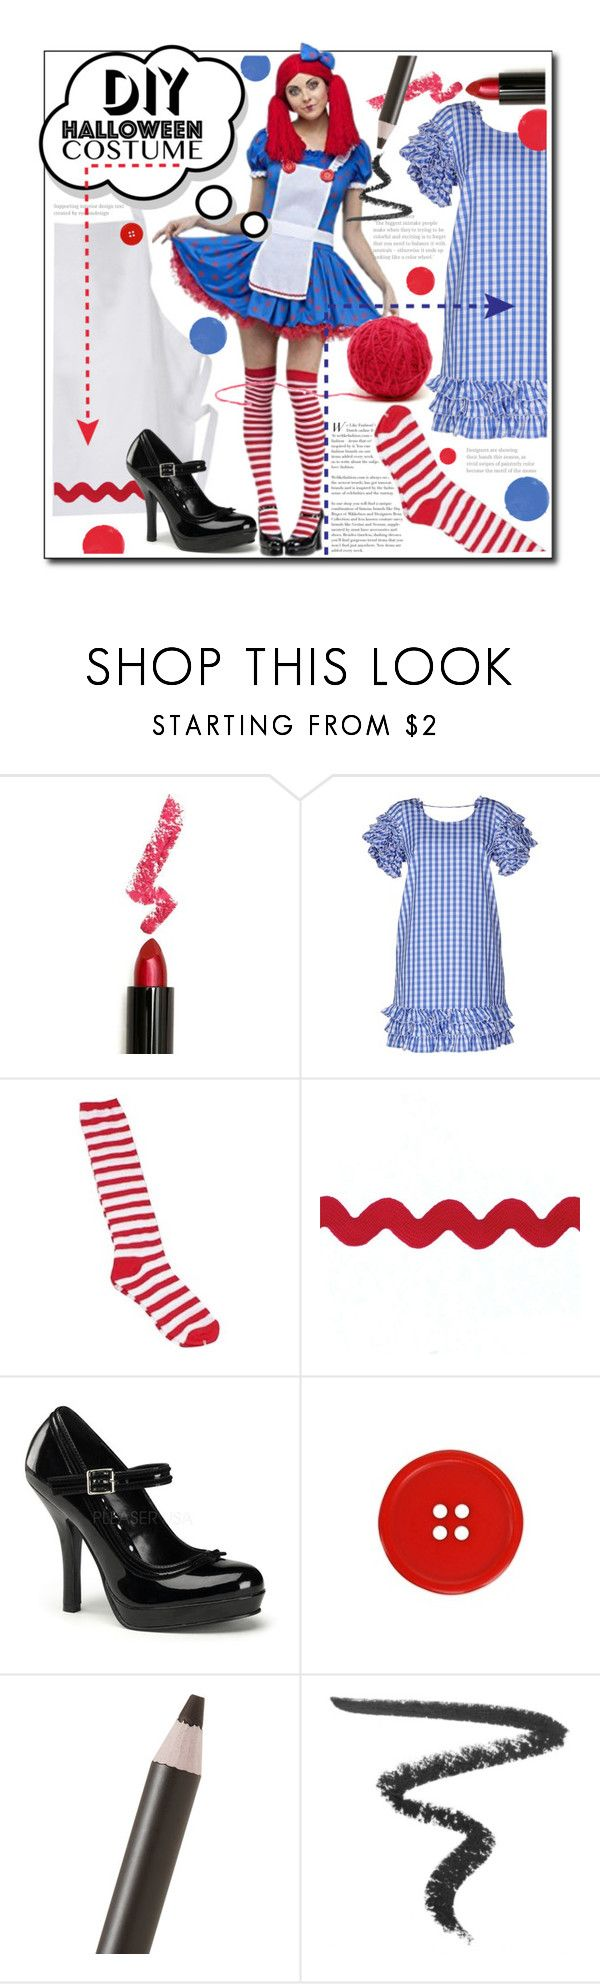 """""""DIY Raggedy Ann Halloween Costume"""" by luvfashn ❤ liked on Polyvore featuring Lime Crime, DOUUOD, Shiseido, Givenchy, halloweencostume and DIYHalloween"""